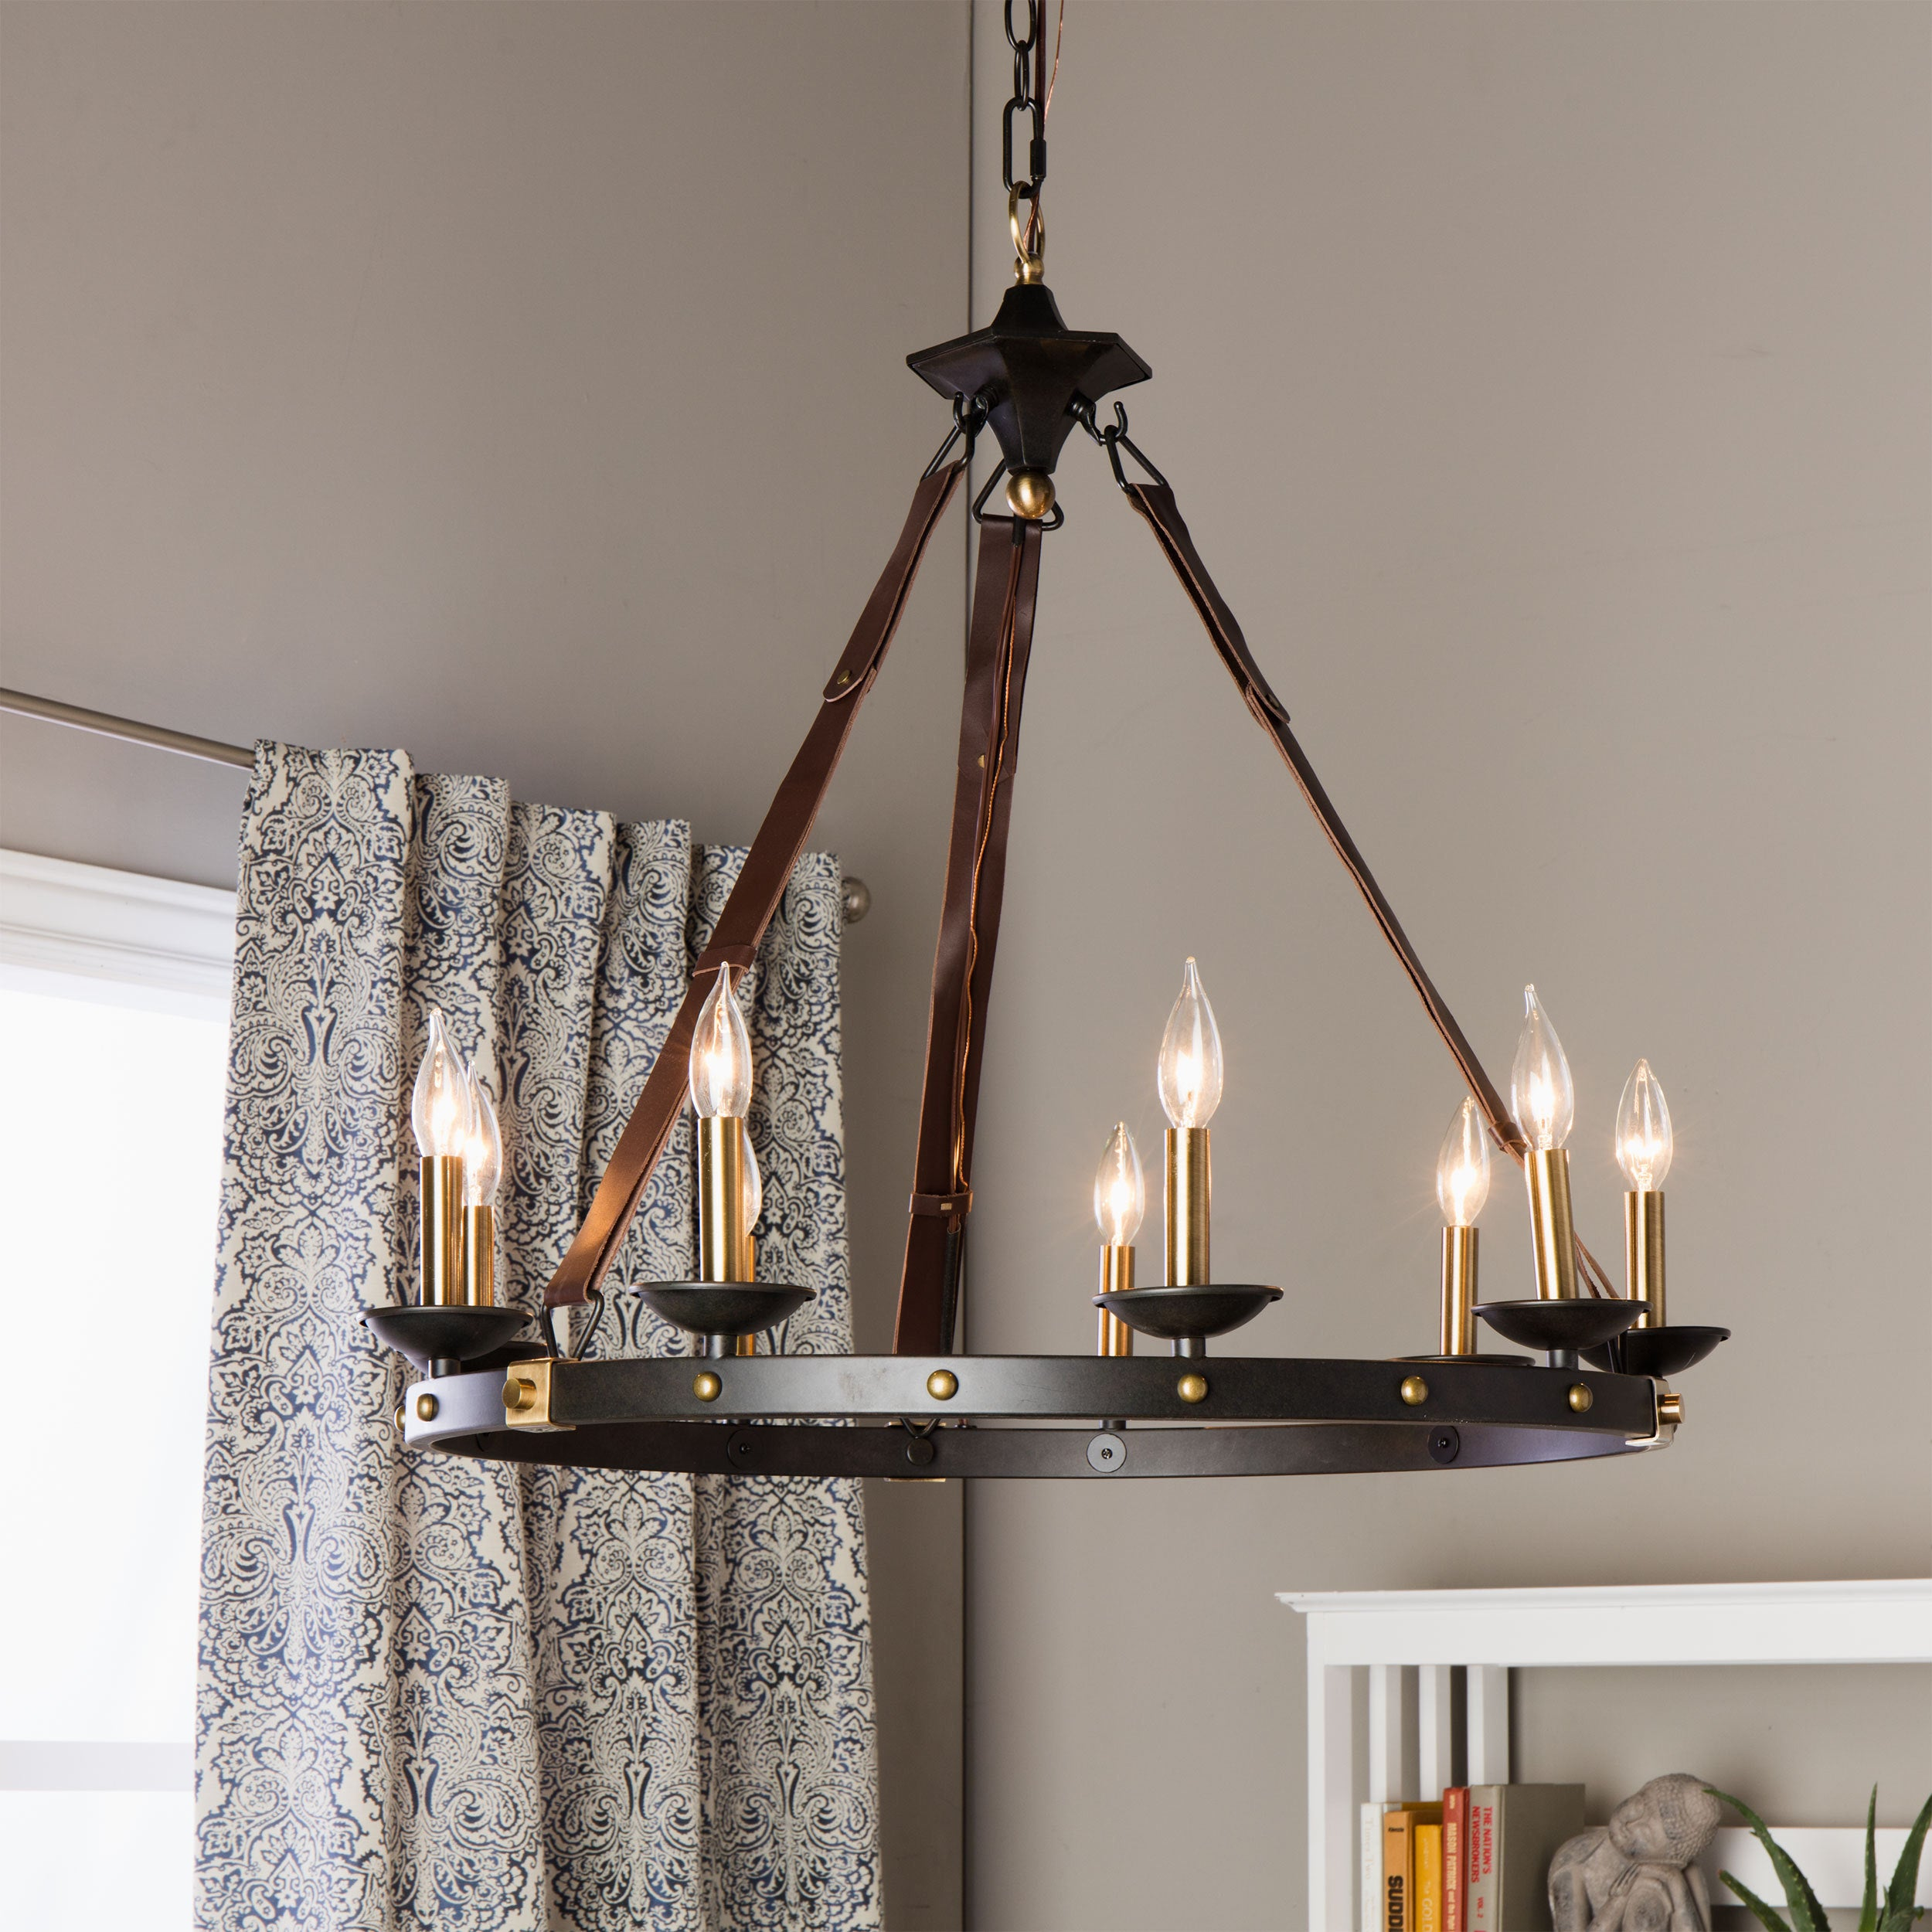 Rustic Ceiling Lights Online At Our Best Lighting Deals